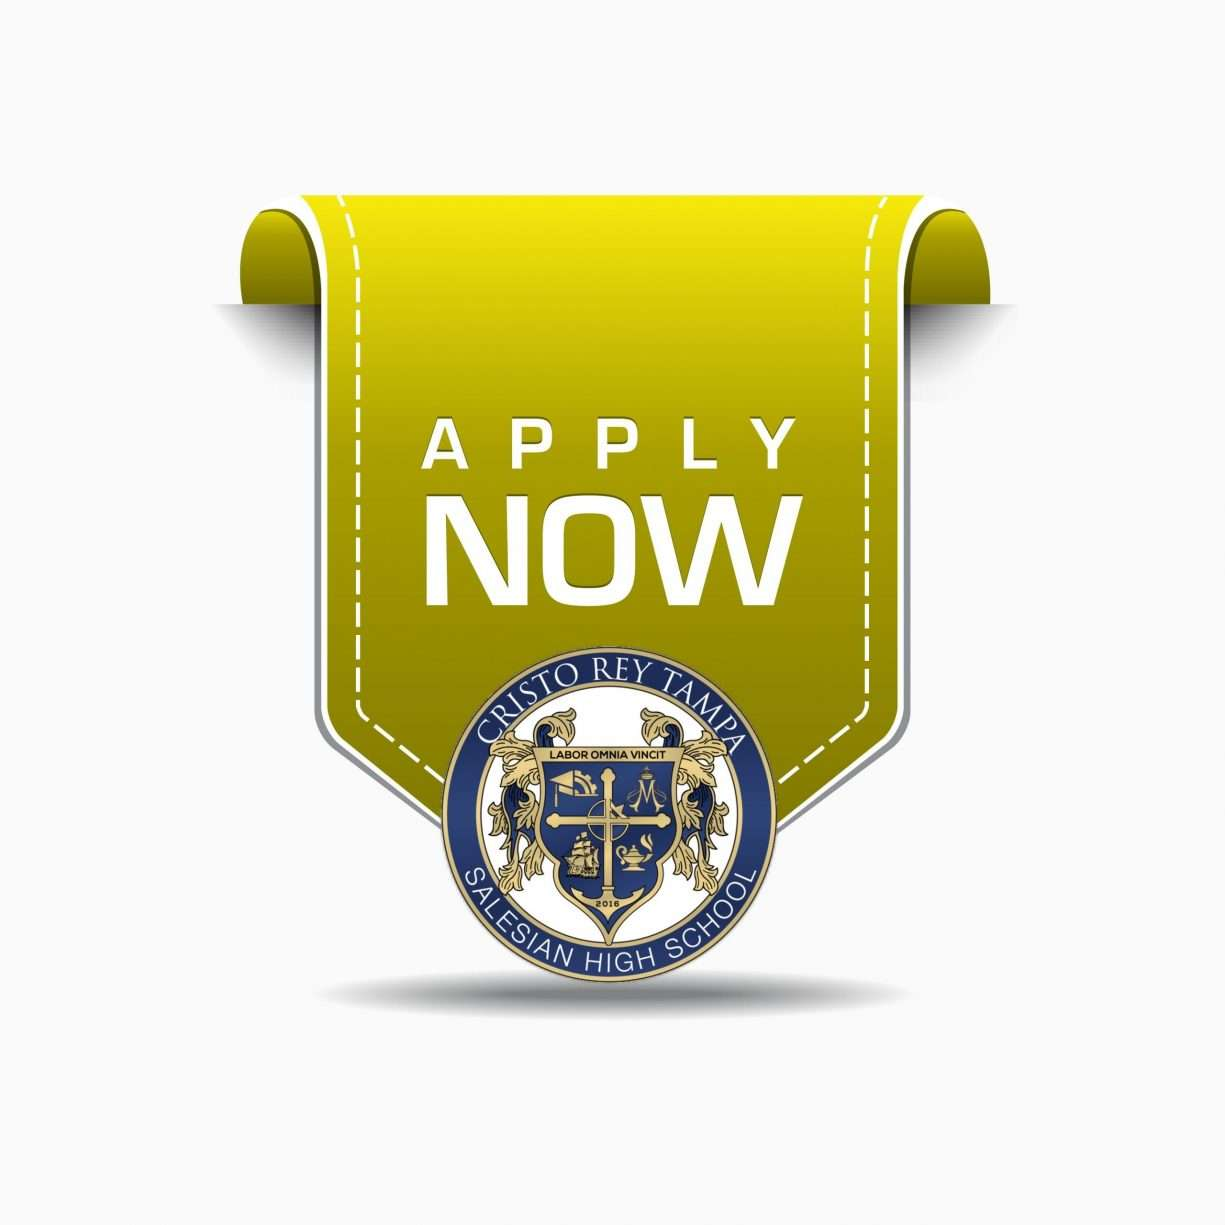 Applications Are Being Accepted for the 2021-2022 School Year